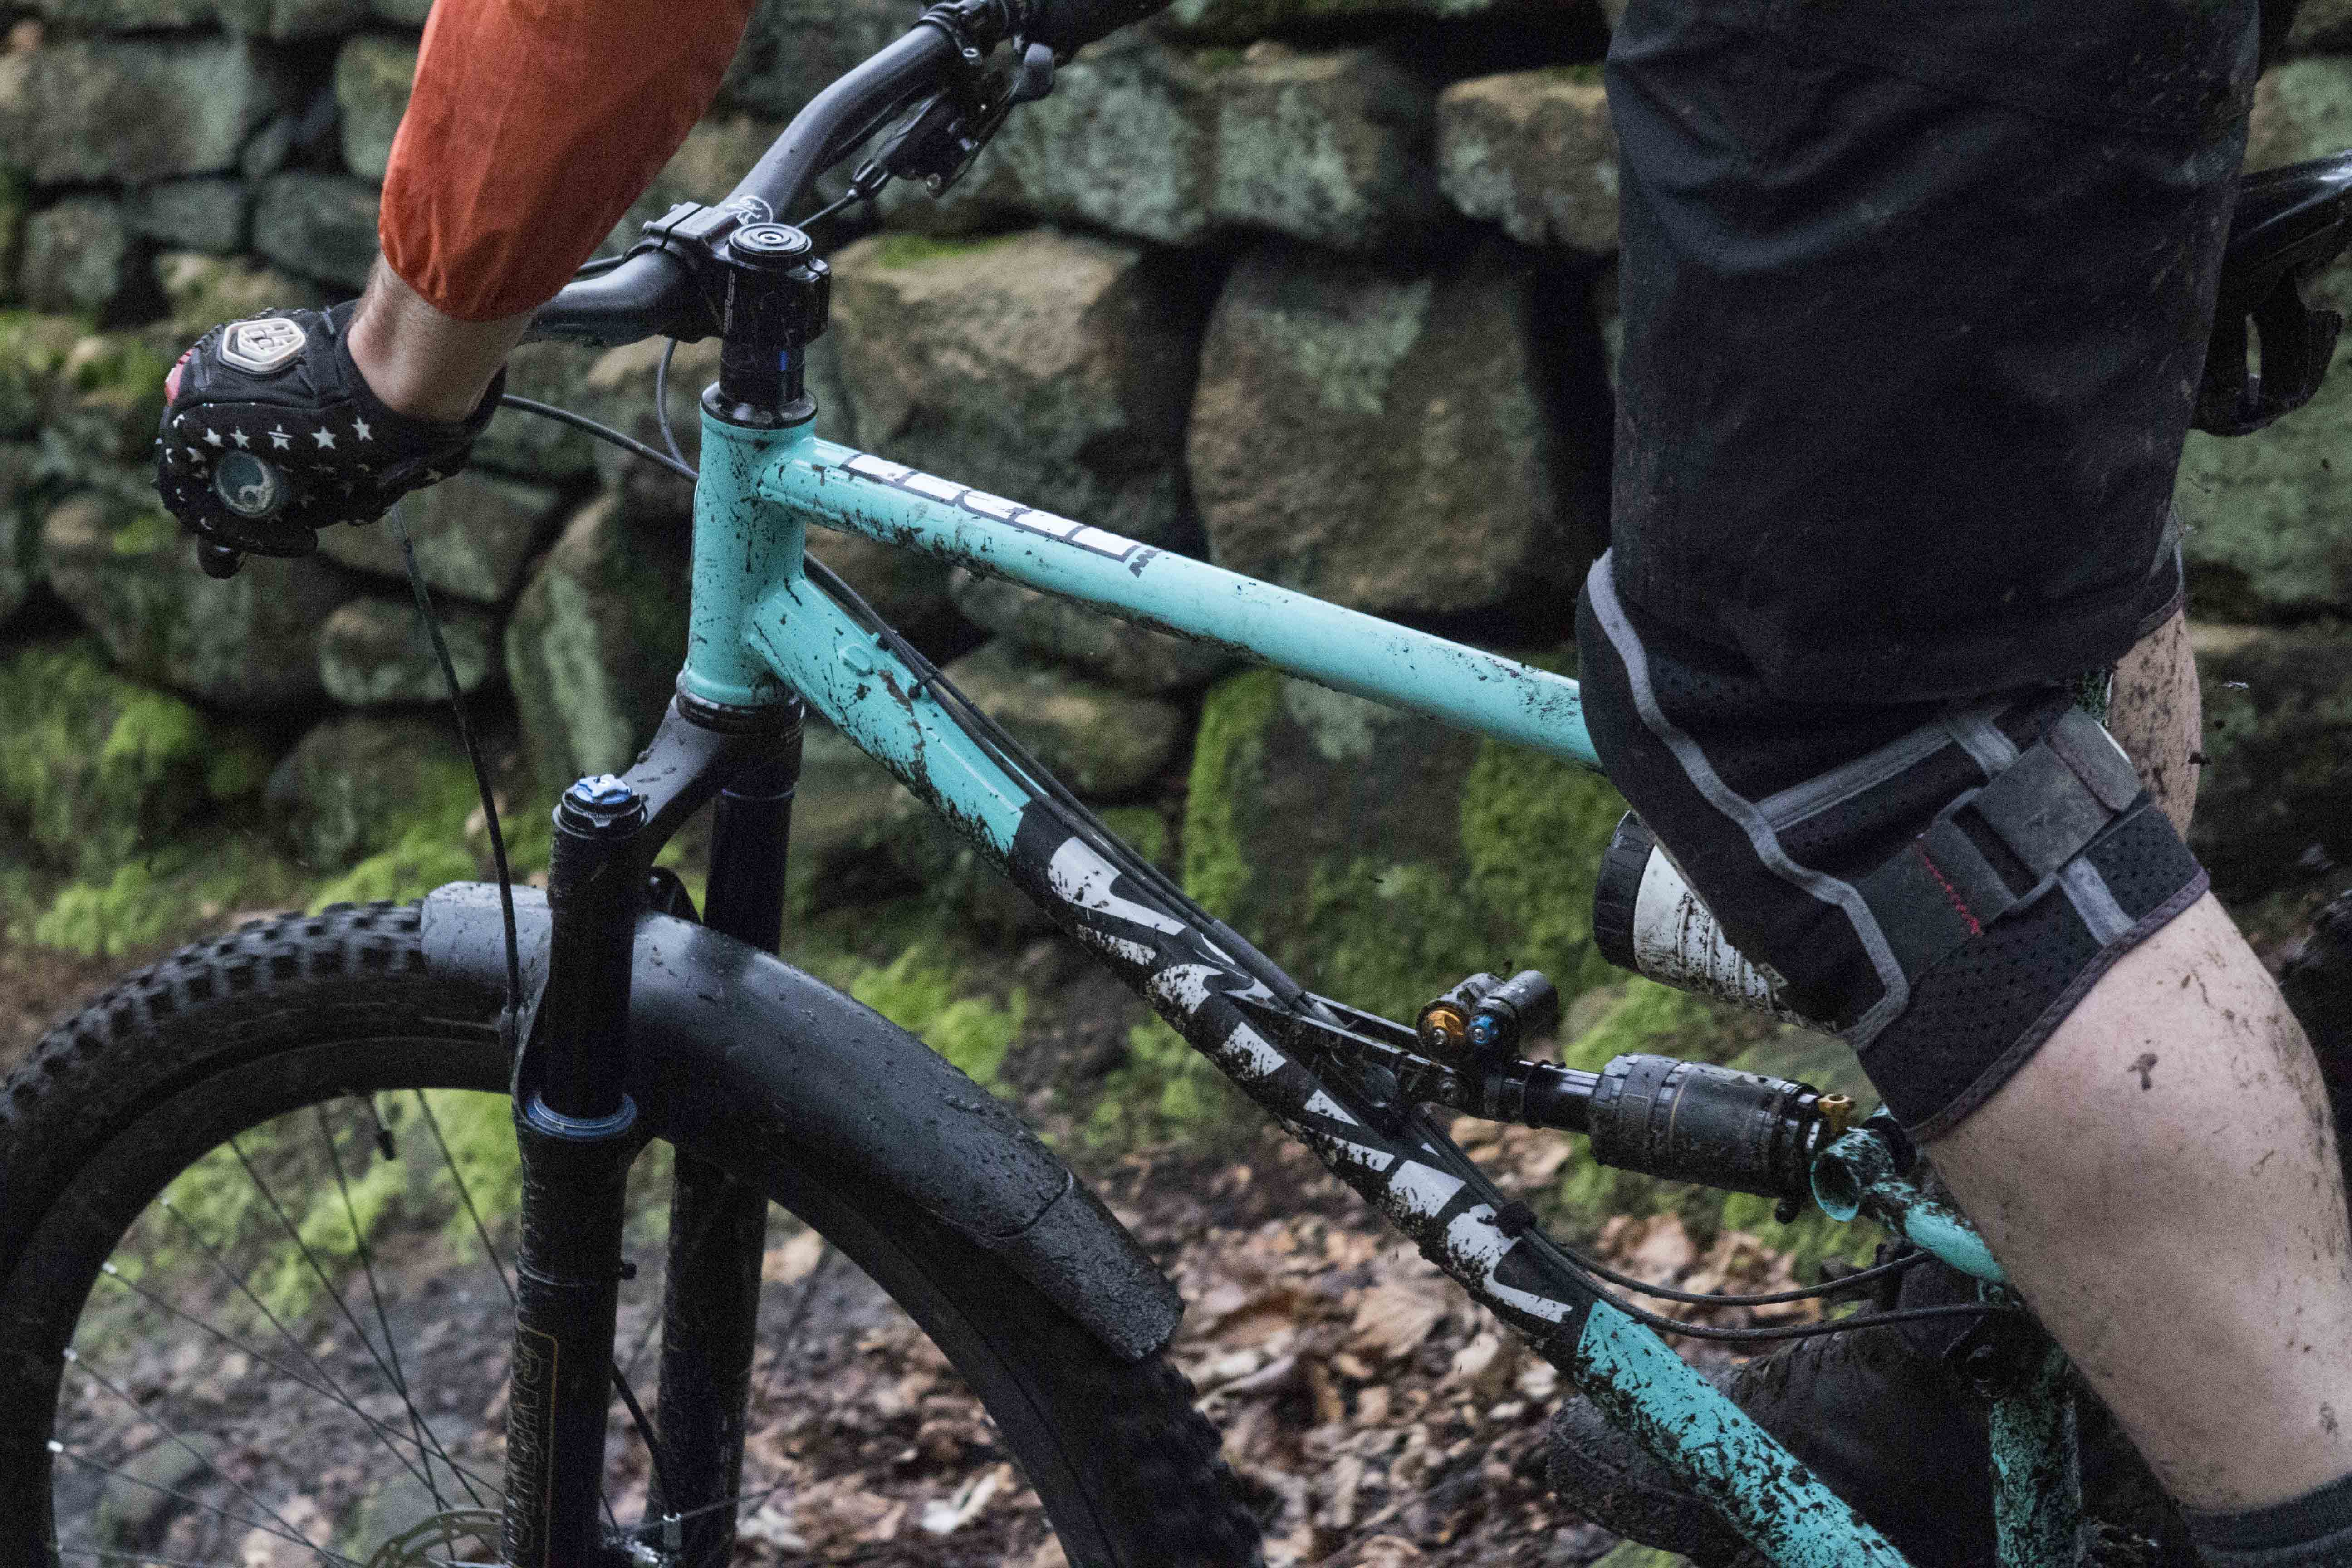 Review Ohlins Rxf36 Fork Stx22 Shock Singletrack Magazine Mountain Bike Parts On To Absorb Bumps In A Road Absorber With